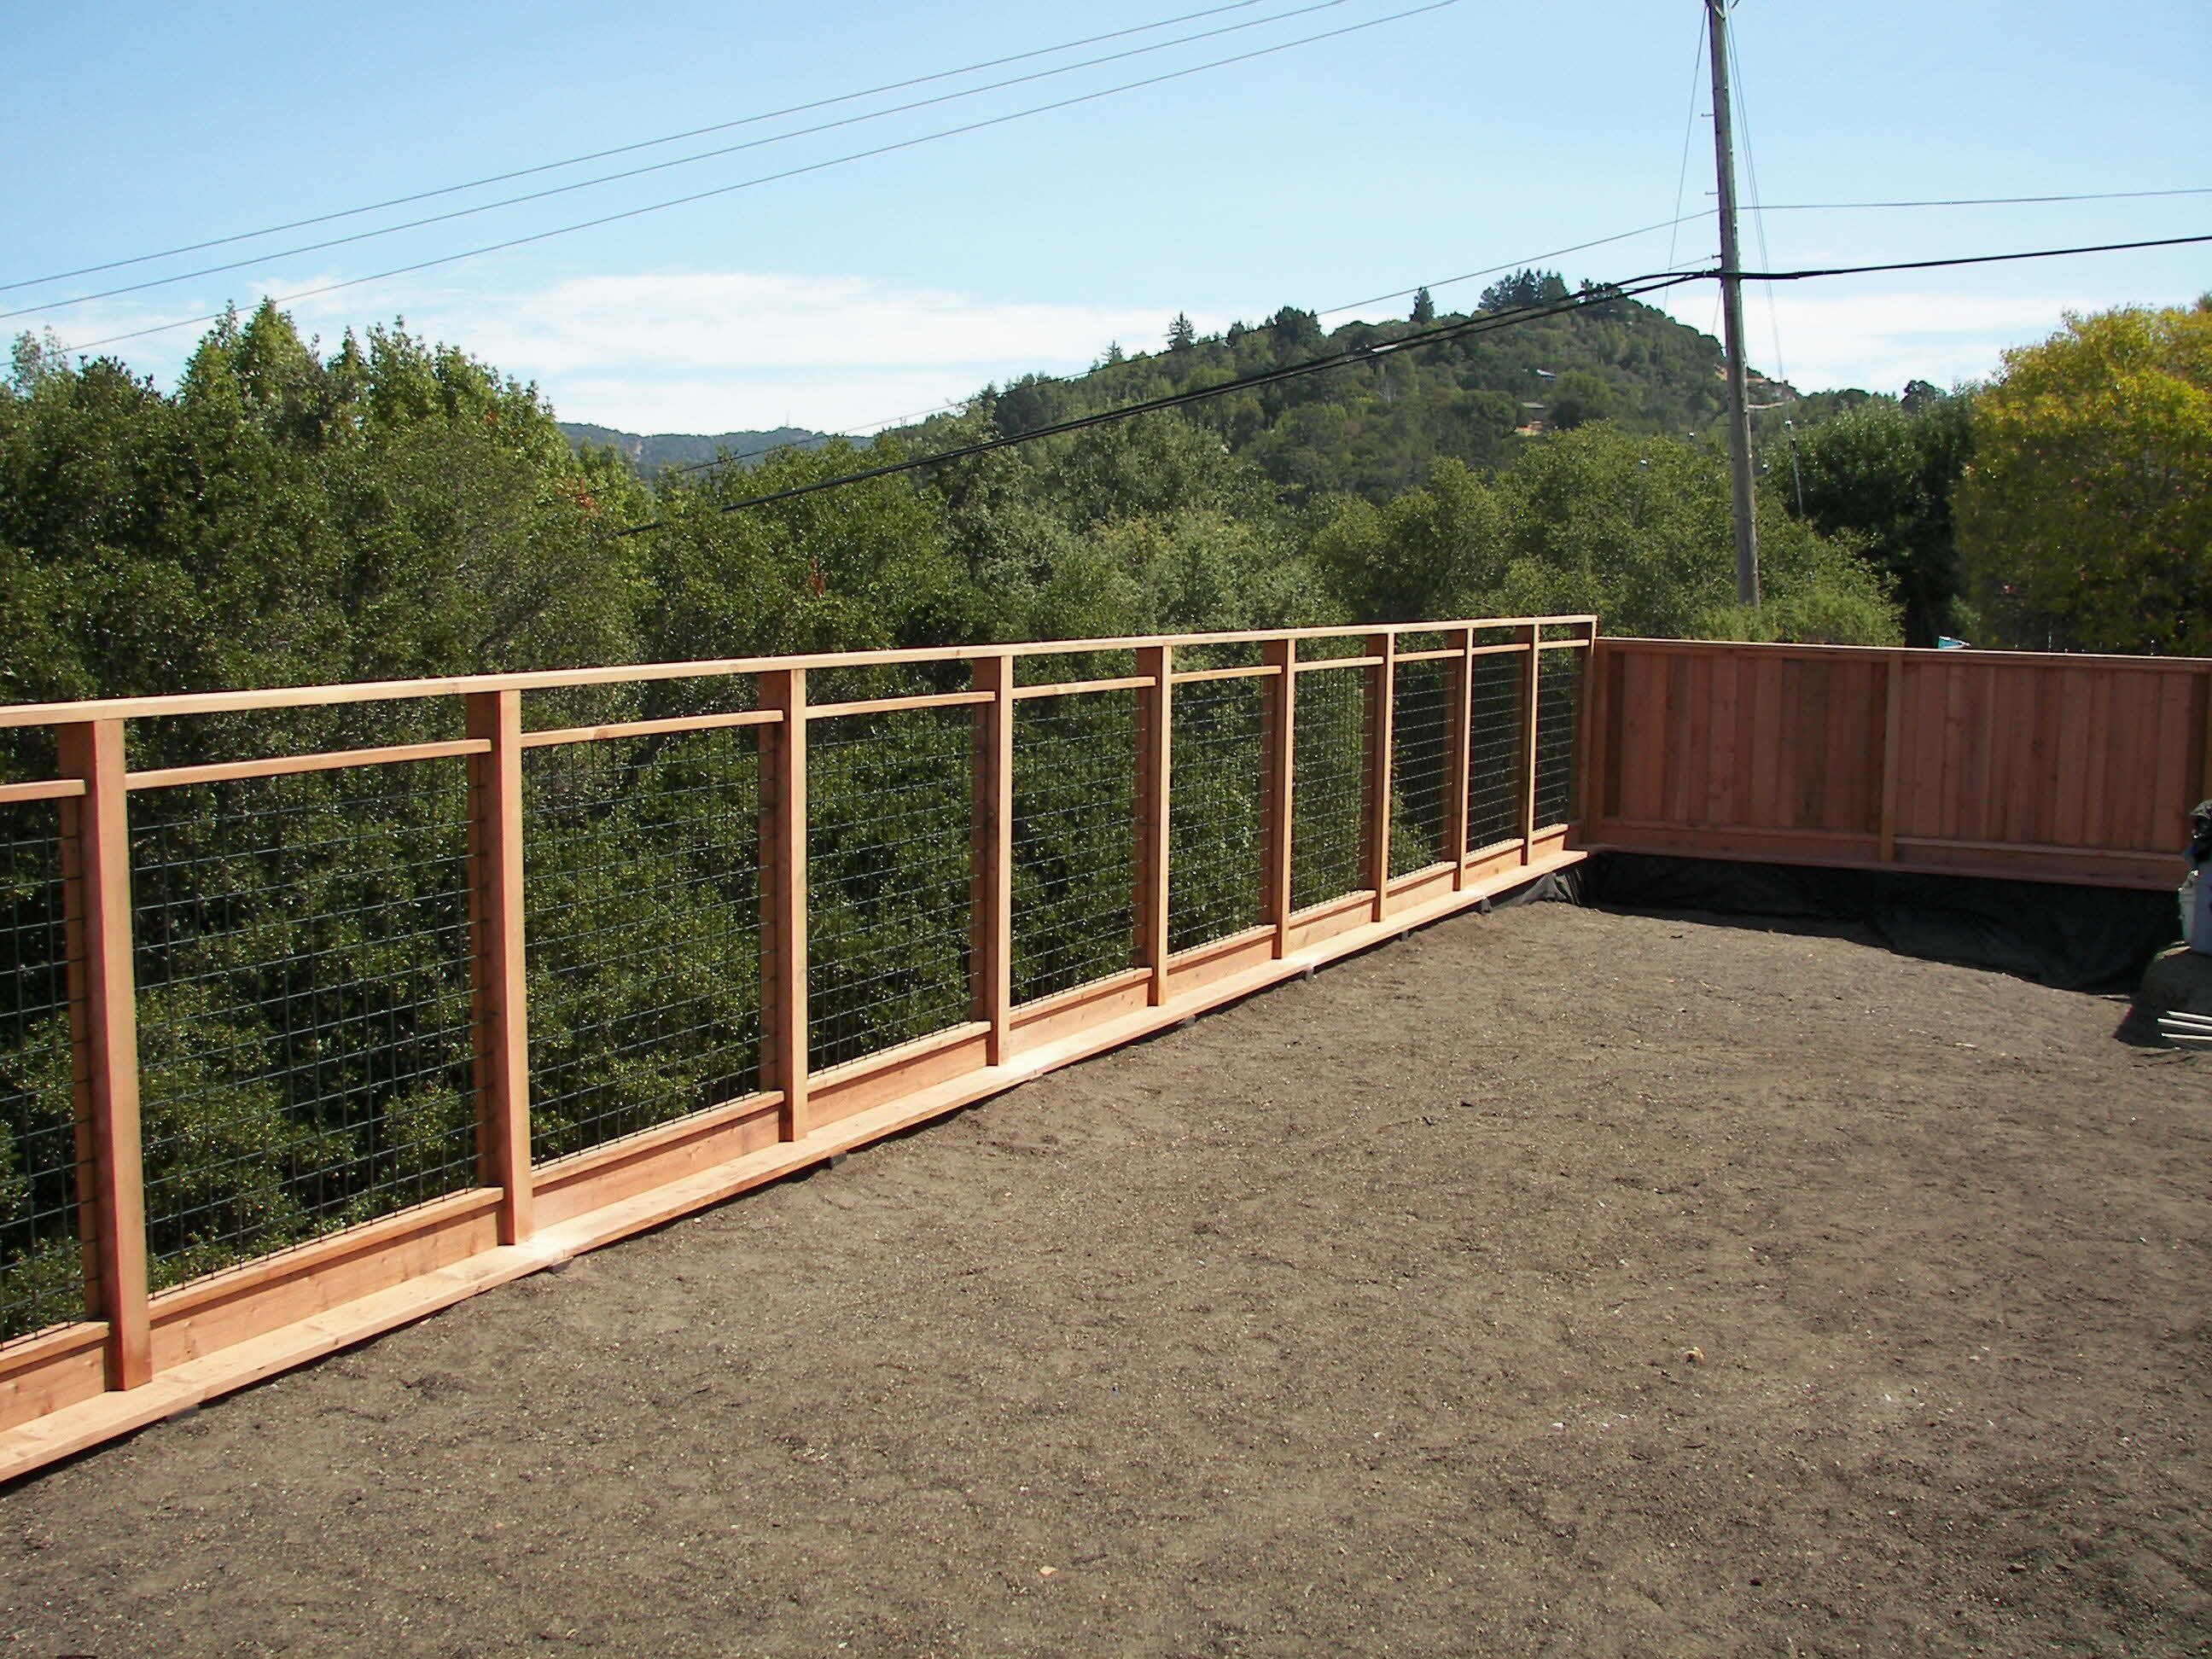 hog wire fence - Google Search | replace back fence to open up green ...